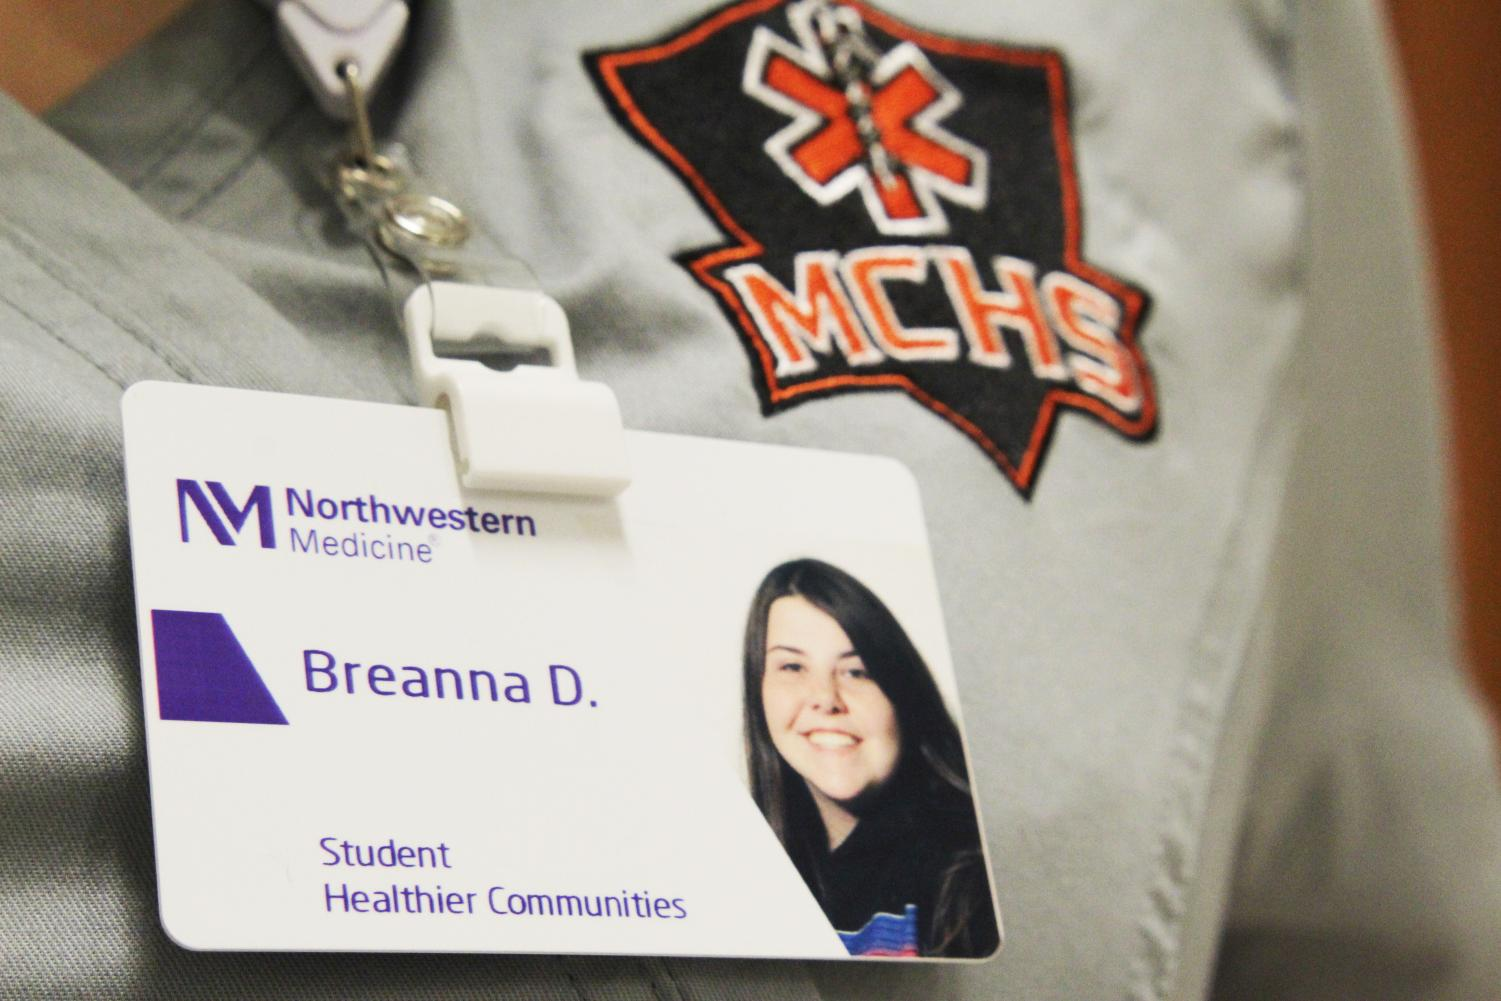 Breanna Darcy, a senior involved with the medical residency program, received hands-on experience at Northwestern Medicine that ended up saving her brother's life.